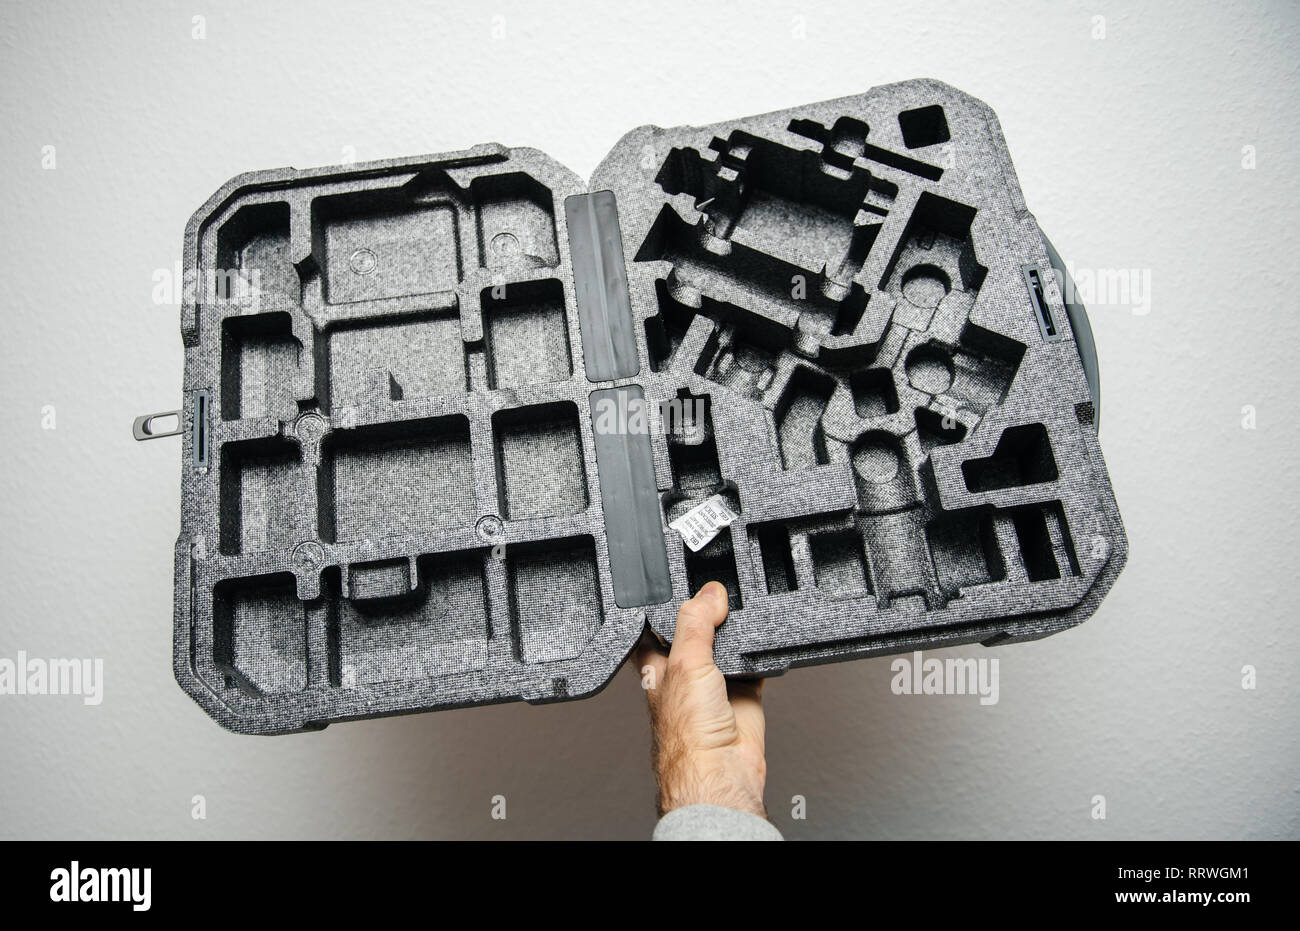 PARIS, FRANCE - NOV 22, 2018: Man hand holding against white background new DJI Ronin S superior 3-axis stabilization system empty packaging foam box - Stock Image